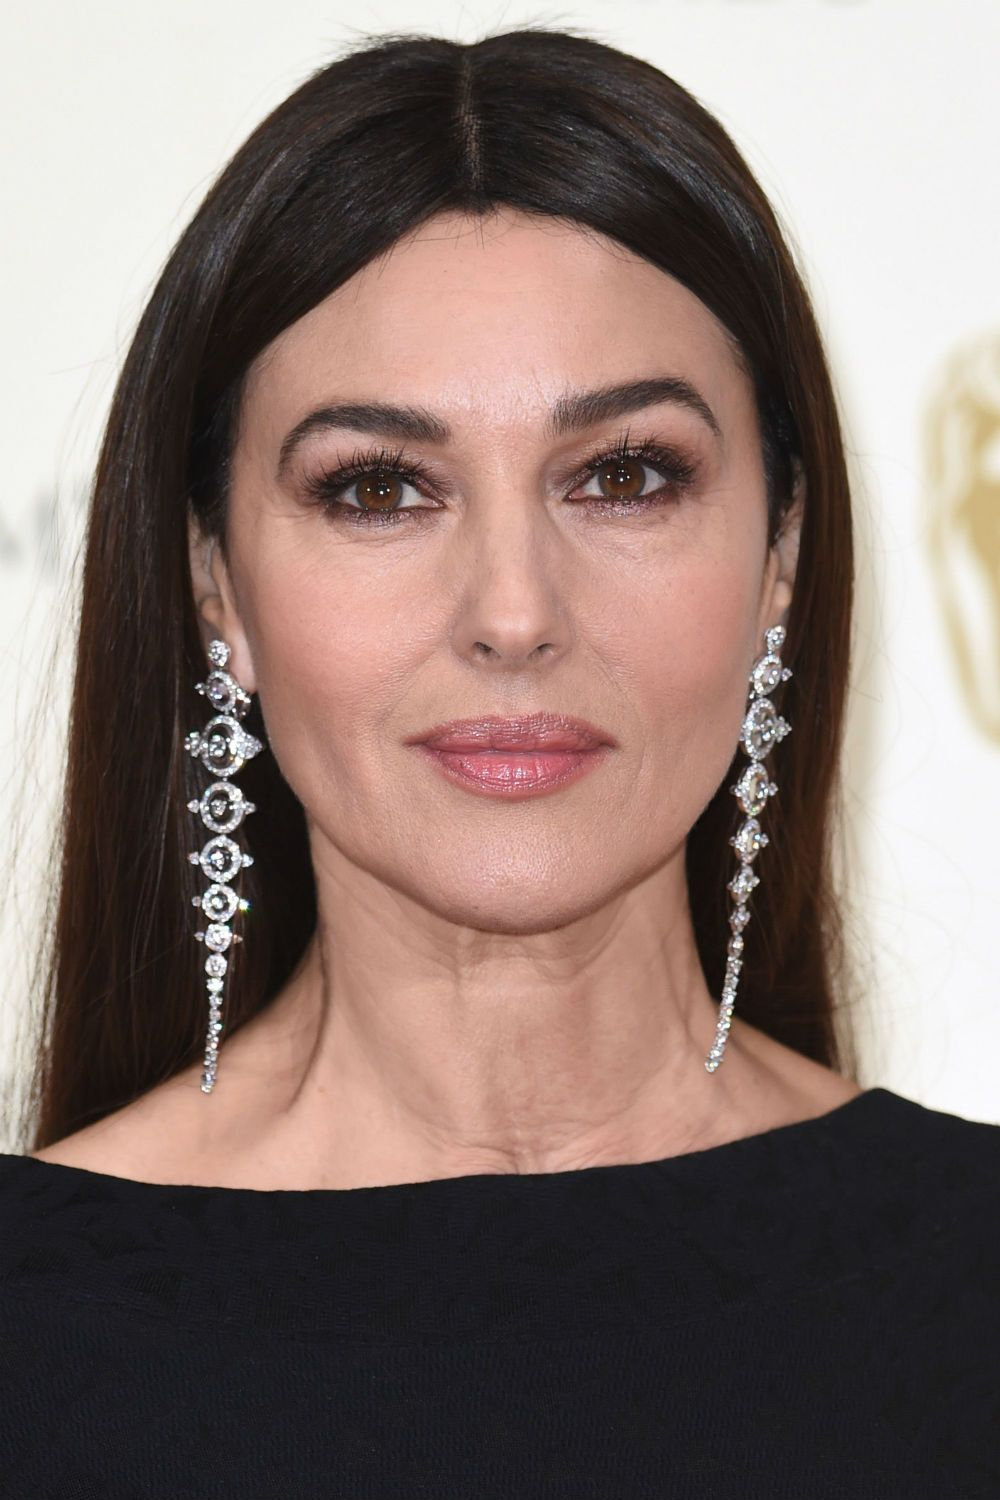 Gorgeous Monica Bellucci opened the Cannes Film Festival and admitted using Photoshop